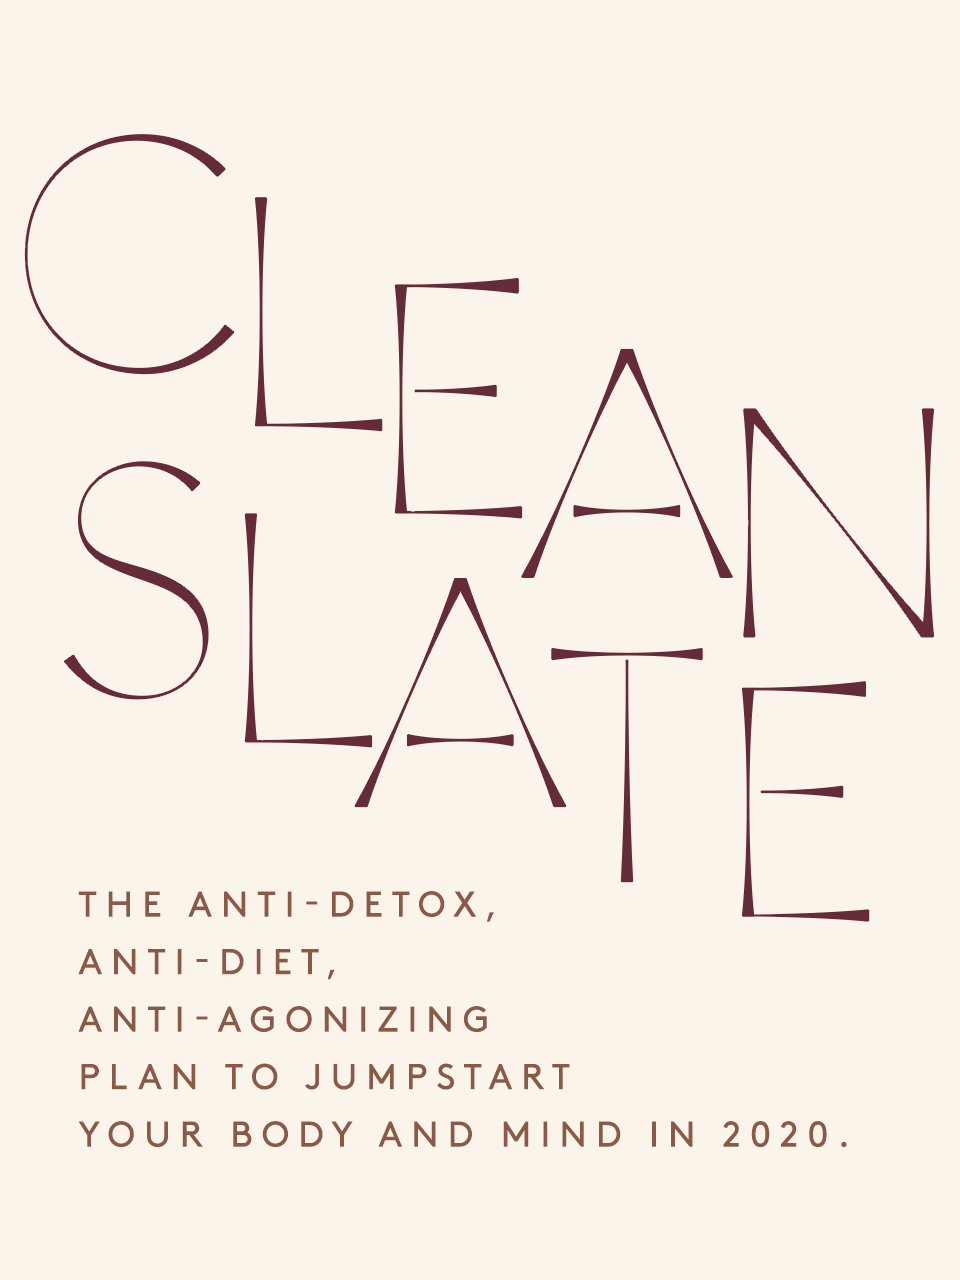 The anti-detox, anti-diet, anti-agonizing plan to jumpstart your body and mind in 2020.